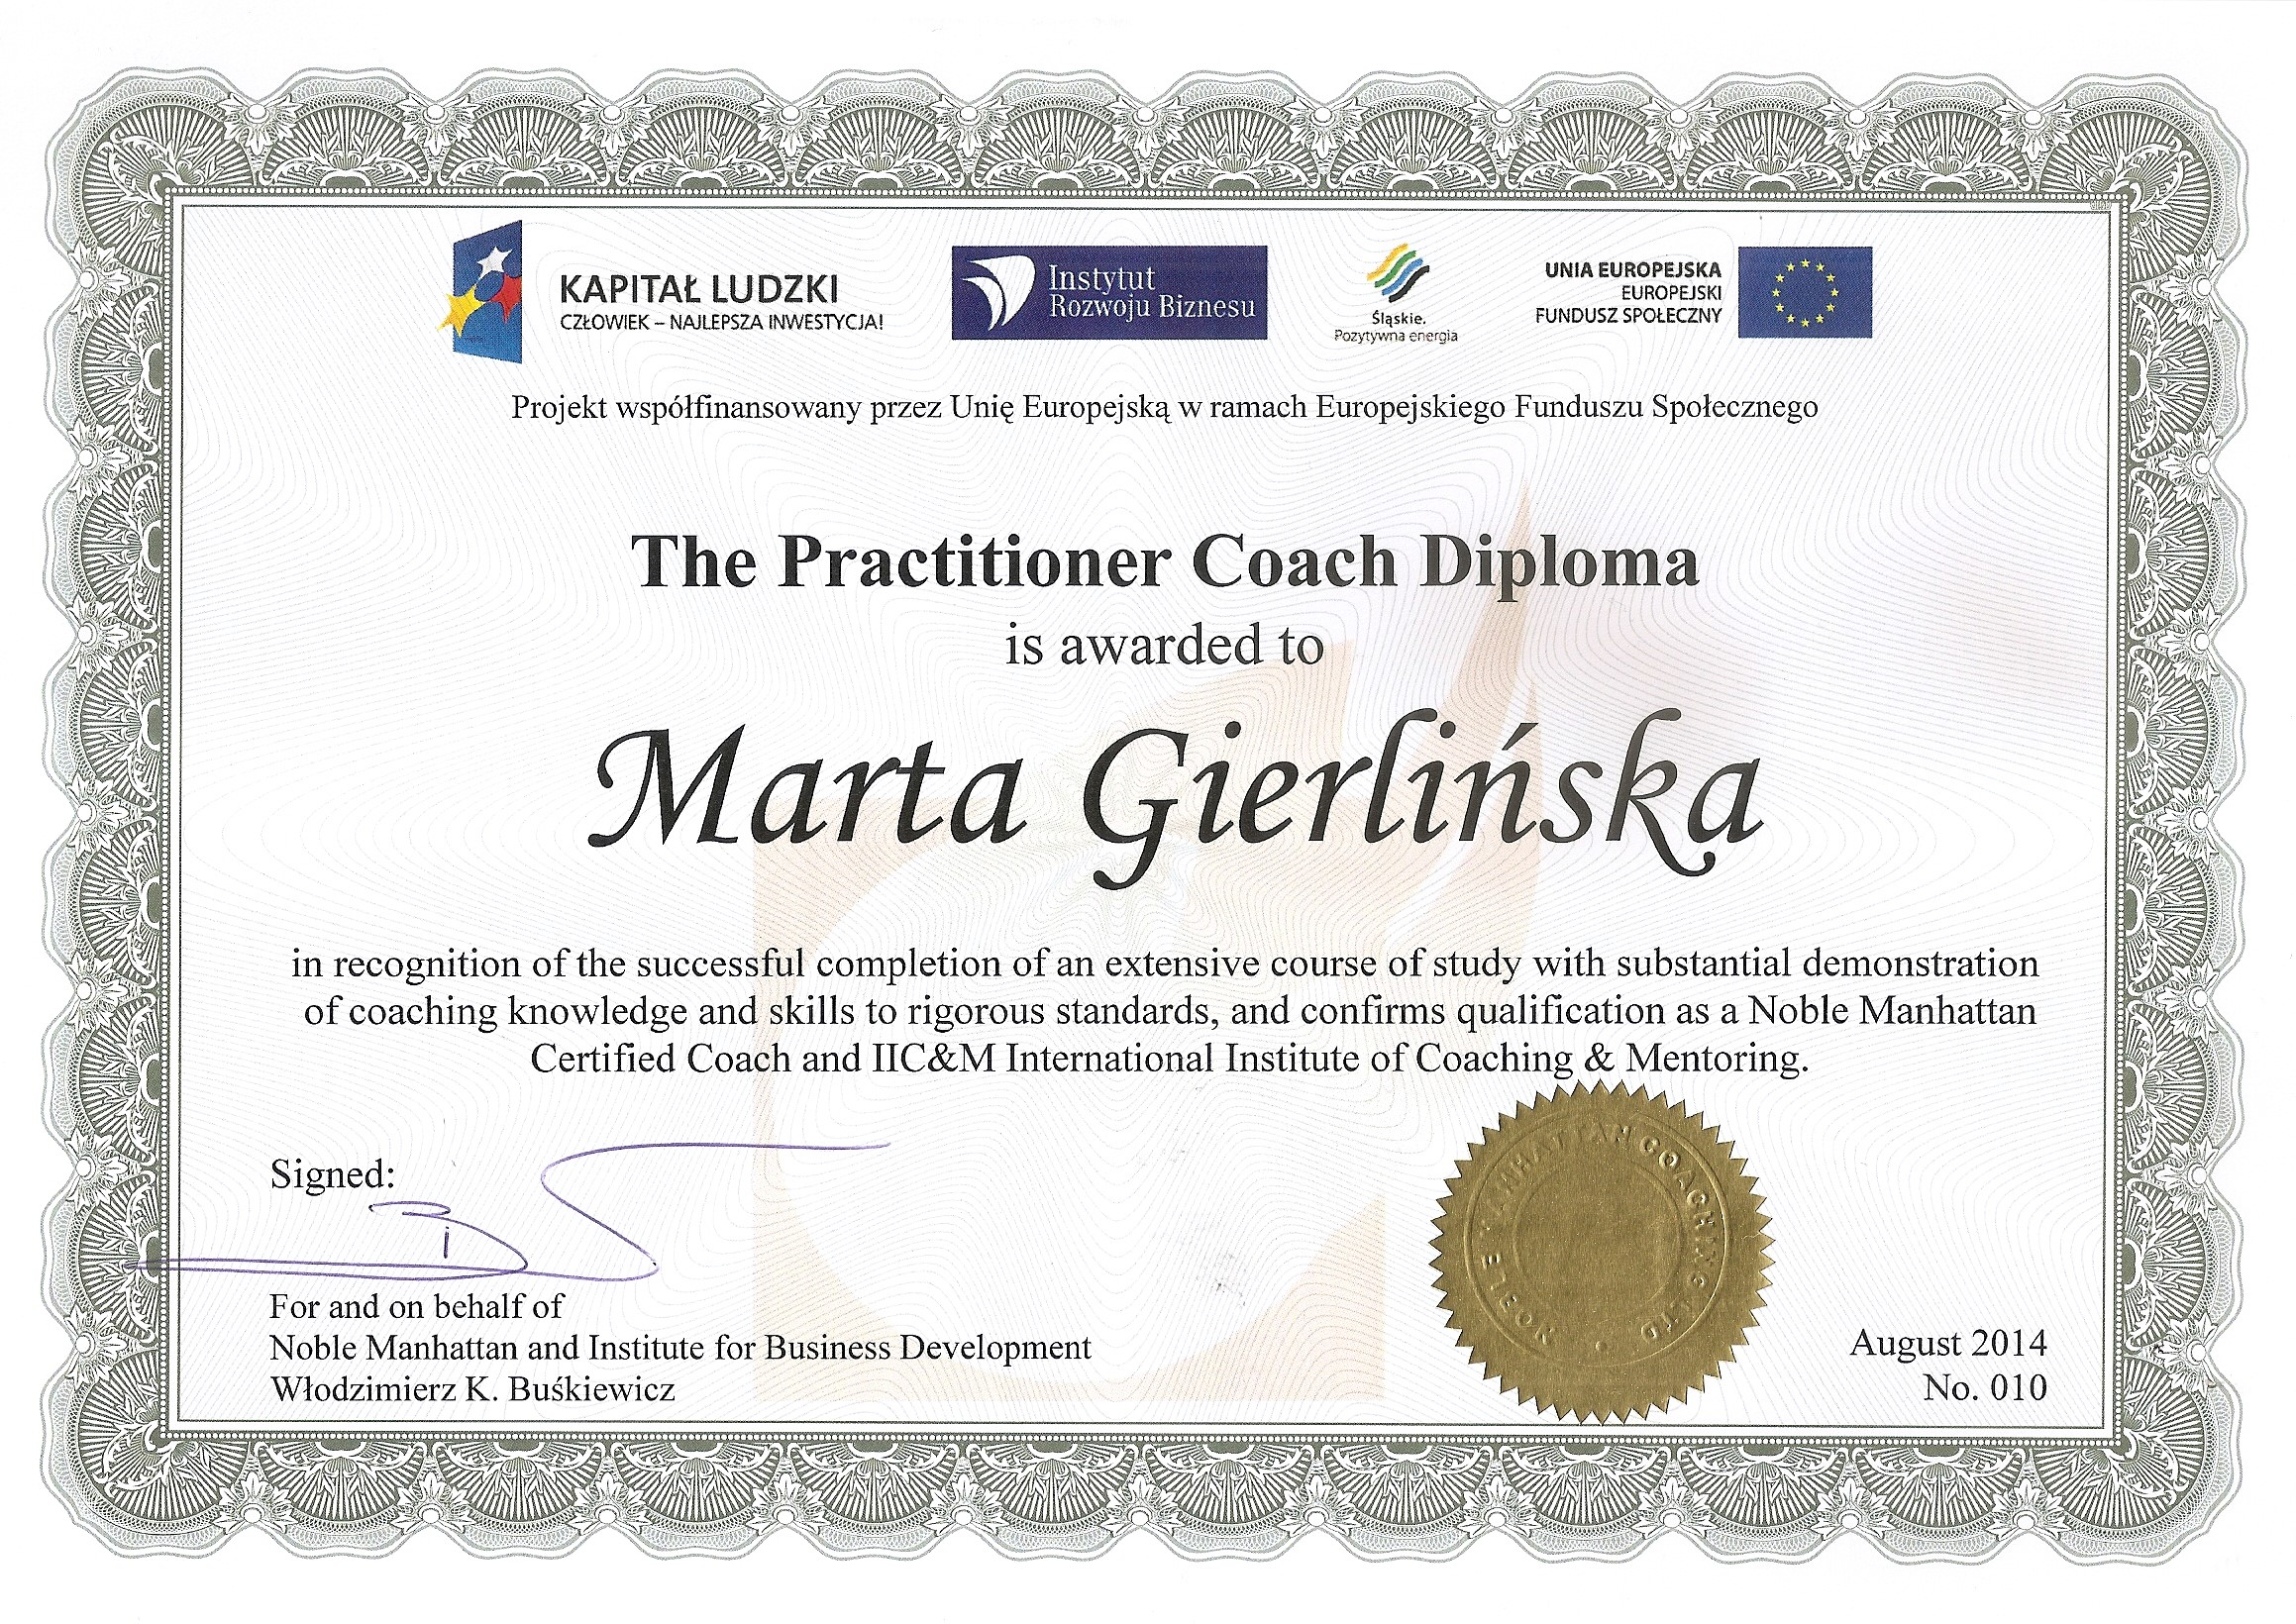 The Practitioner Coach Diploma